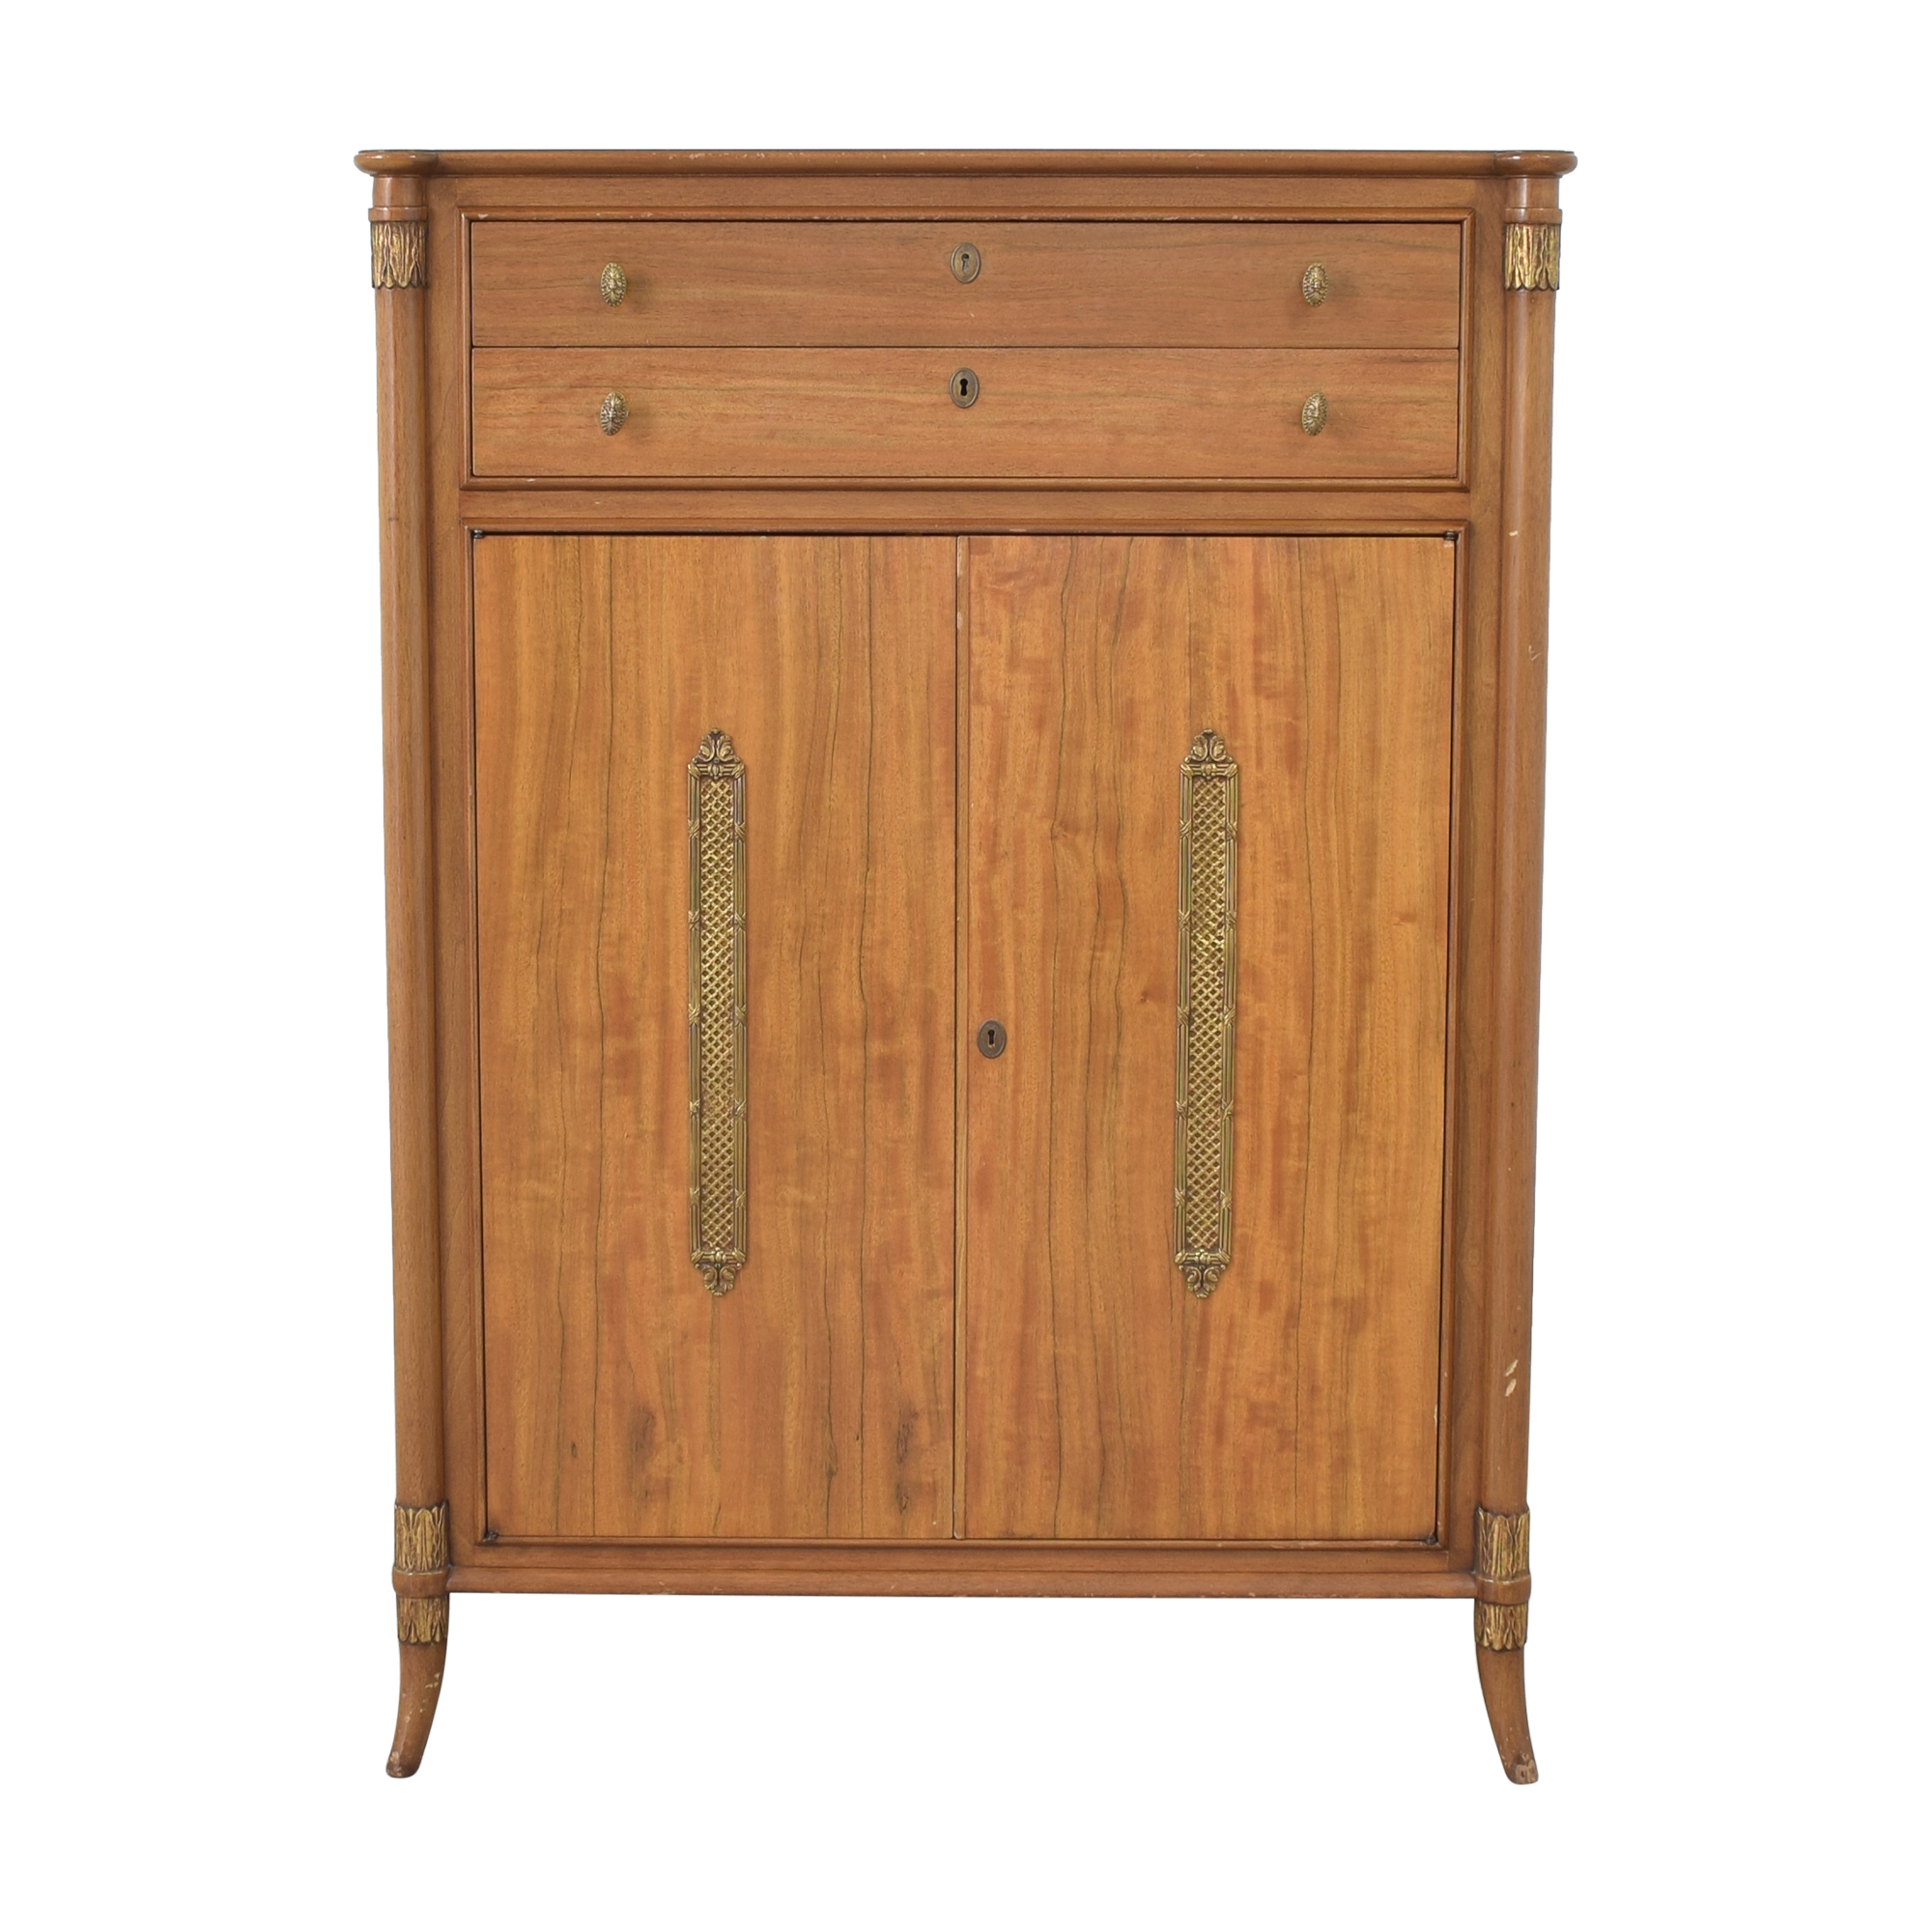 Albano Albano Mid Century Chest of Drawers ma